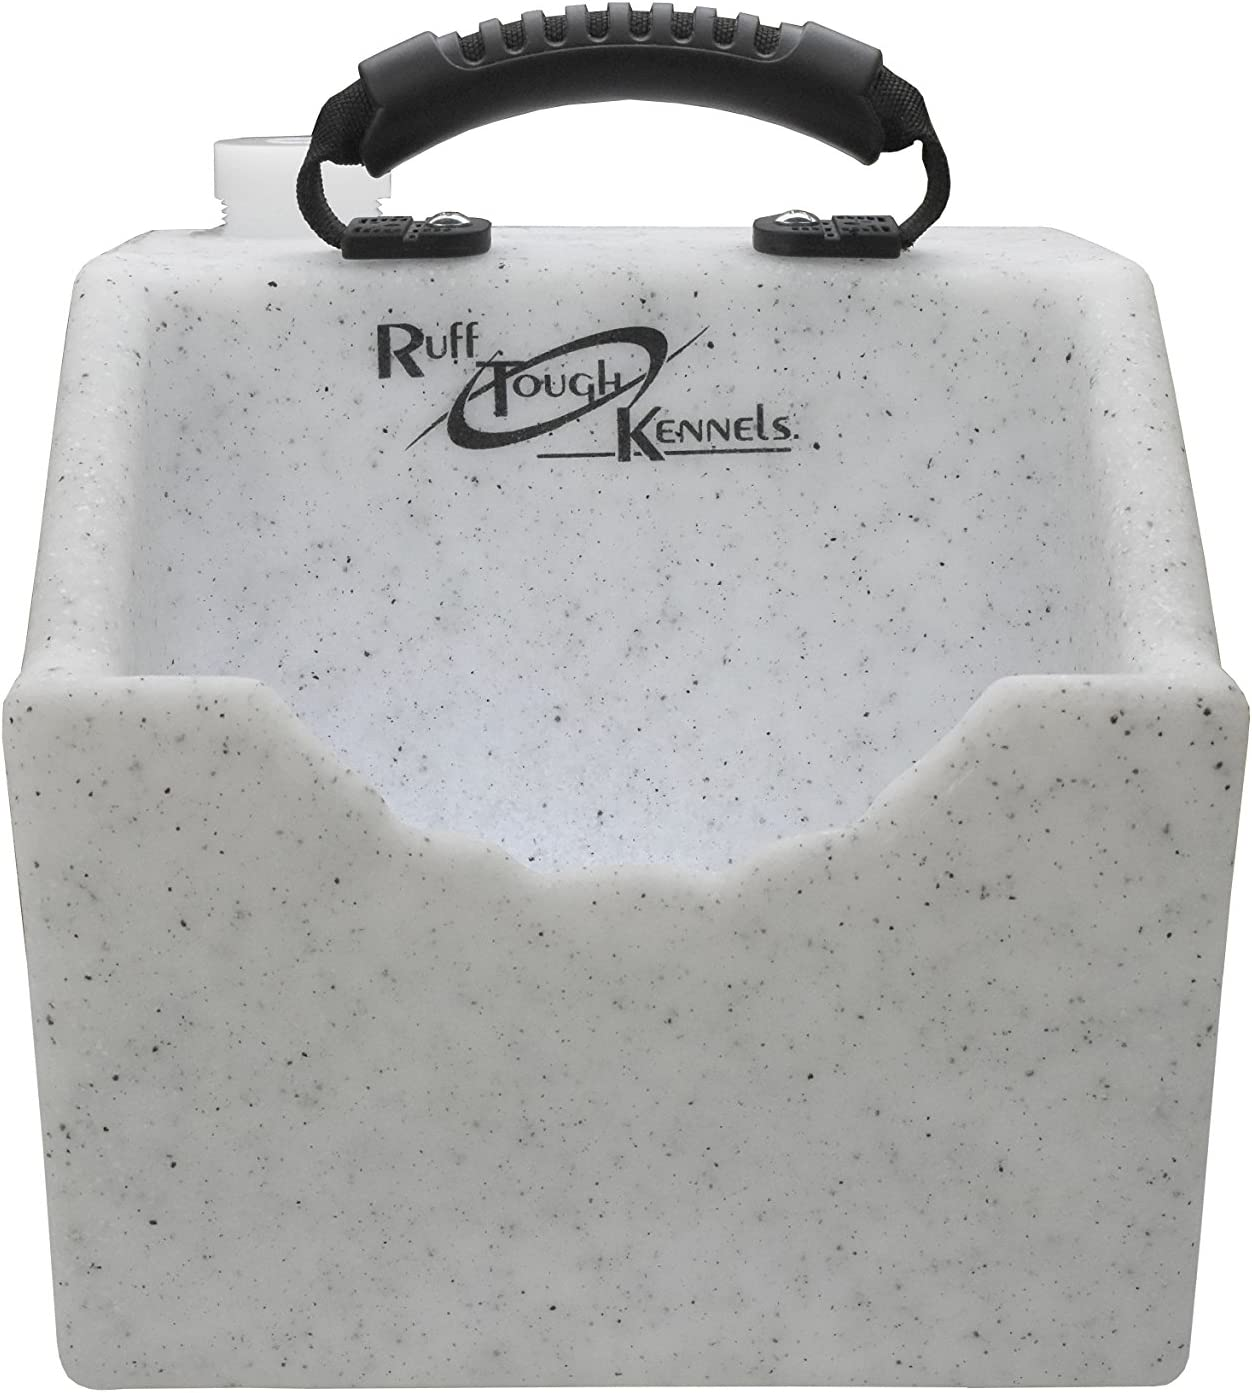 Ruff Tough Kennels Dog Water Sale special price Choice Dish use Easy Portable to Wa Bowl